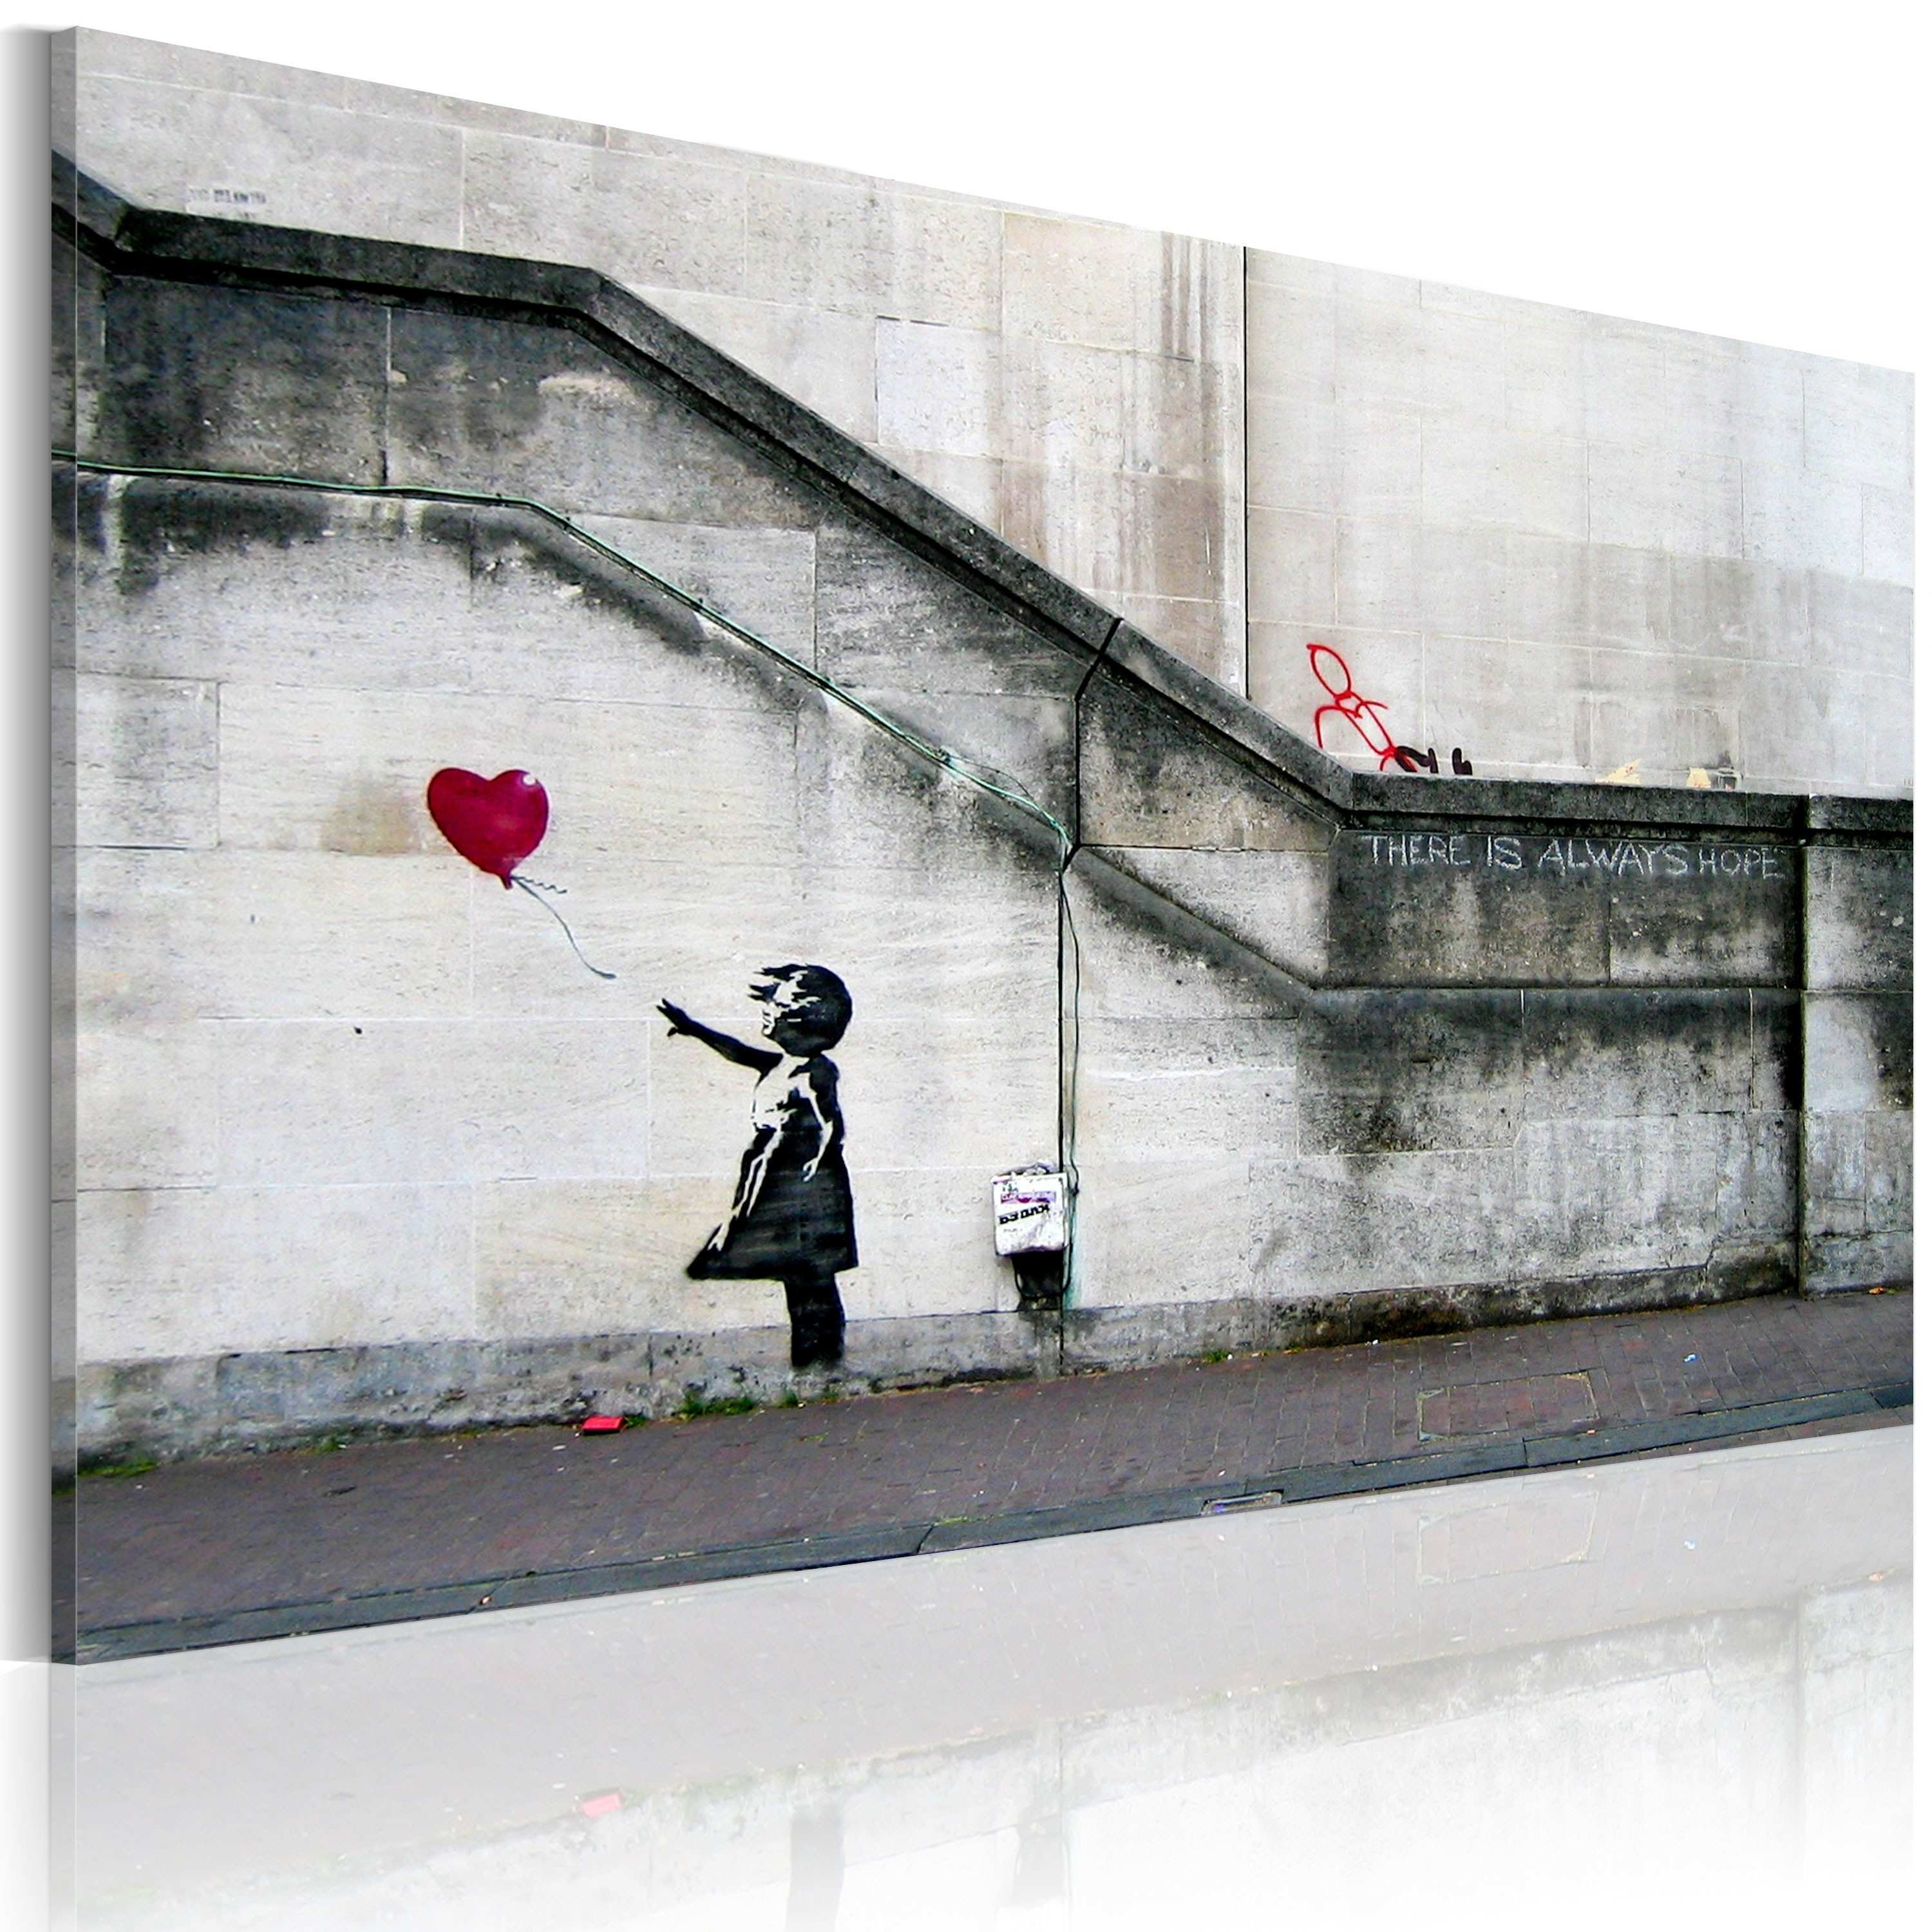 Canvas Wall Art There is always hope Banksy Graffiti Street